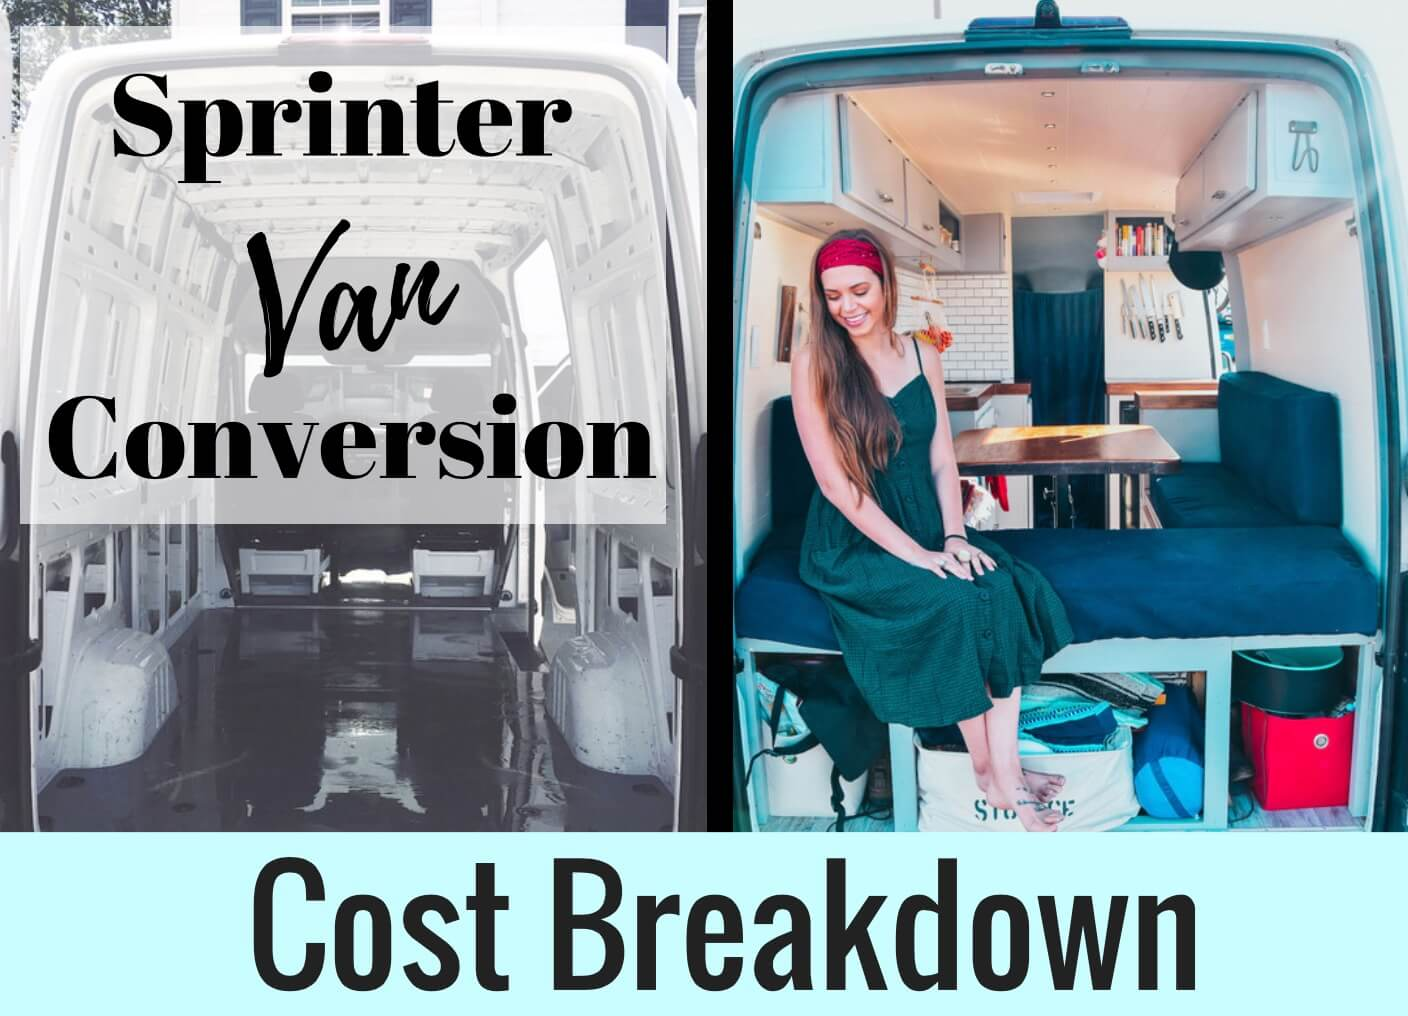 sprinter van conversion cost breakdown divine on the road 2011 Sprinter Van Fuse Diagram during your many hours of research before the van build it can be hard to get a round idea of how much to expect on spending there are so many options